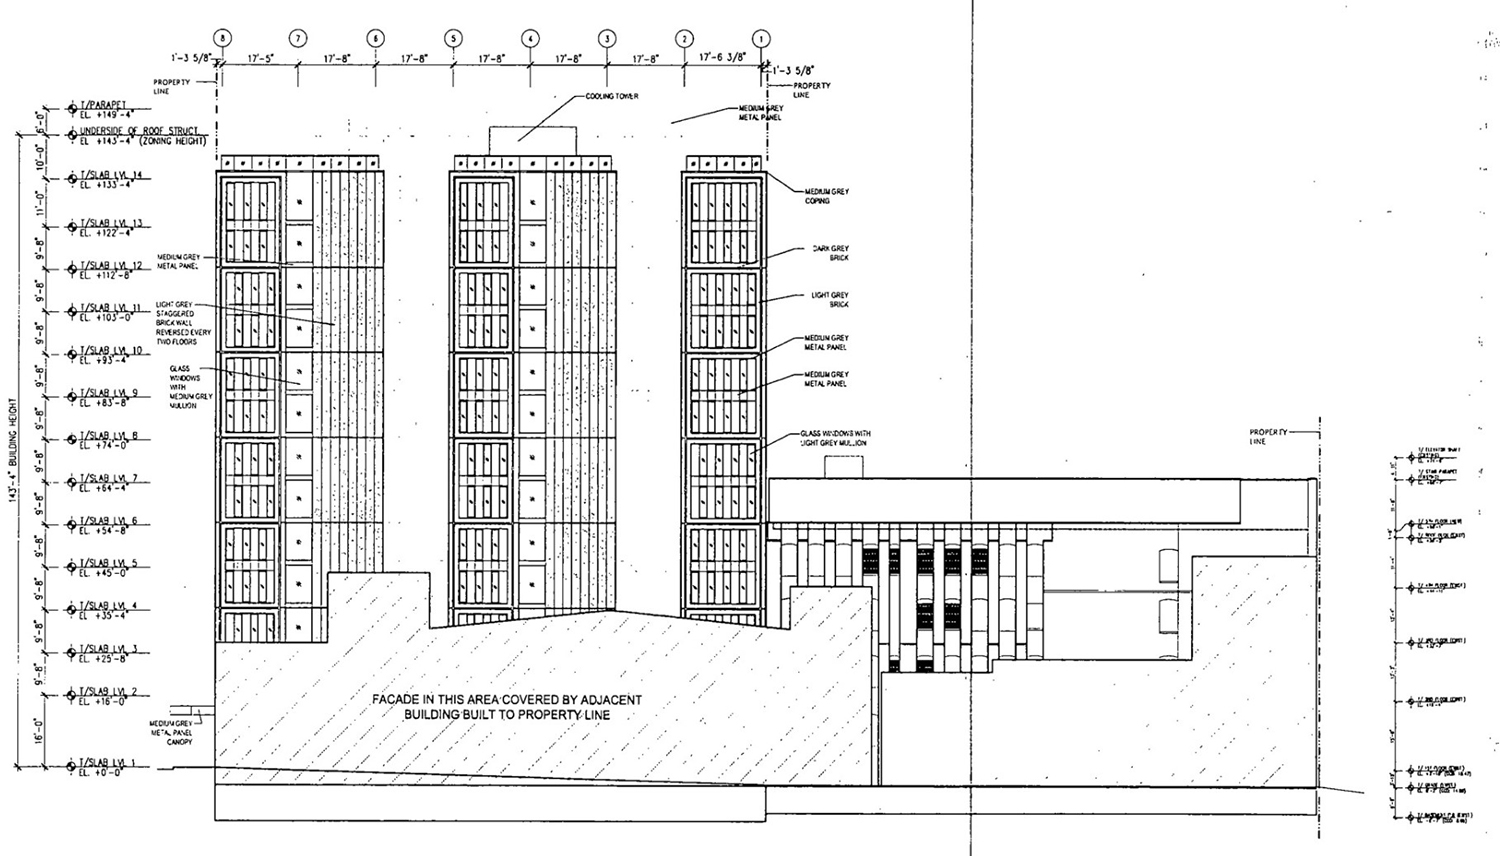 South Elevation for 311 N Sangamon Street and 310 N Peoria Street. Drawing by Hirsch MPG